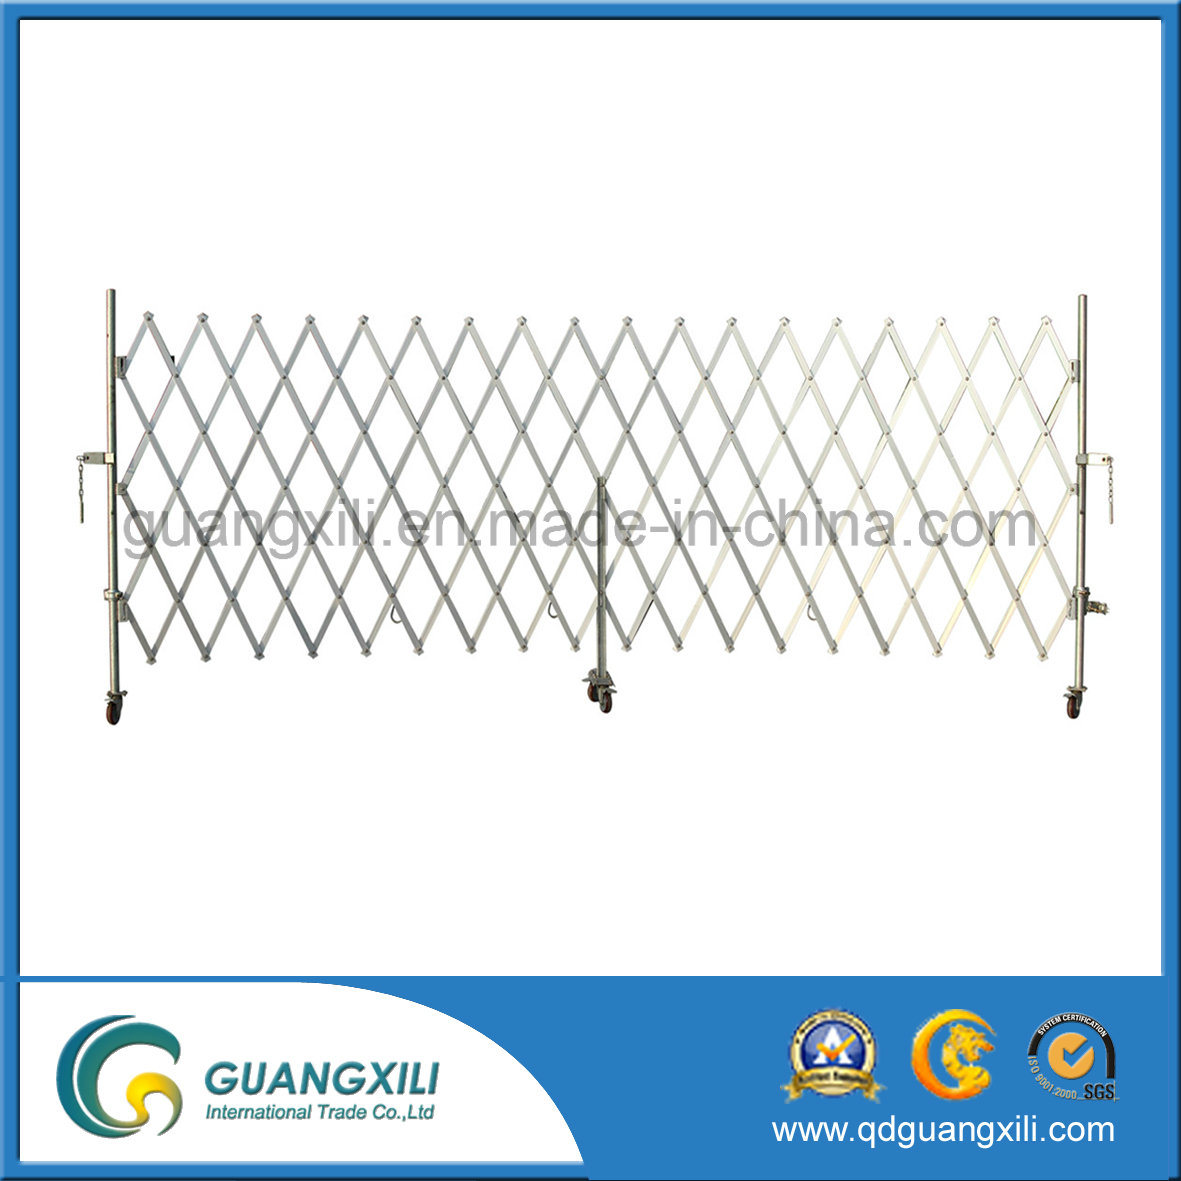 OEM New Design Aluminum Foldable Expandable Barrier Gate with Caster